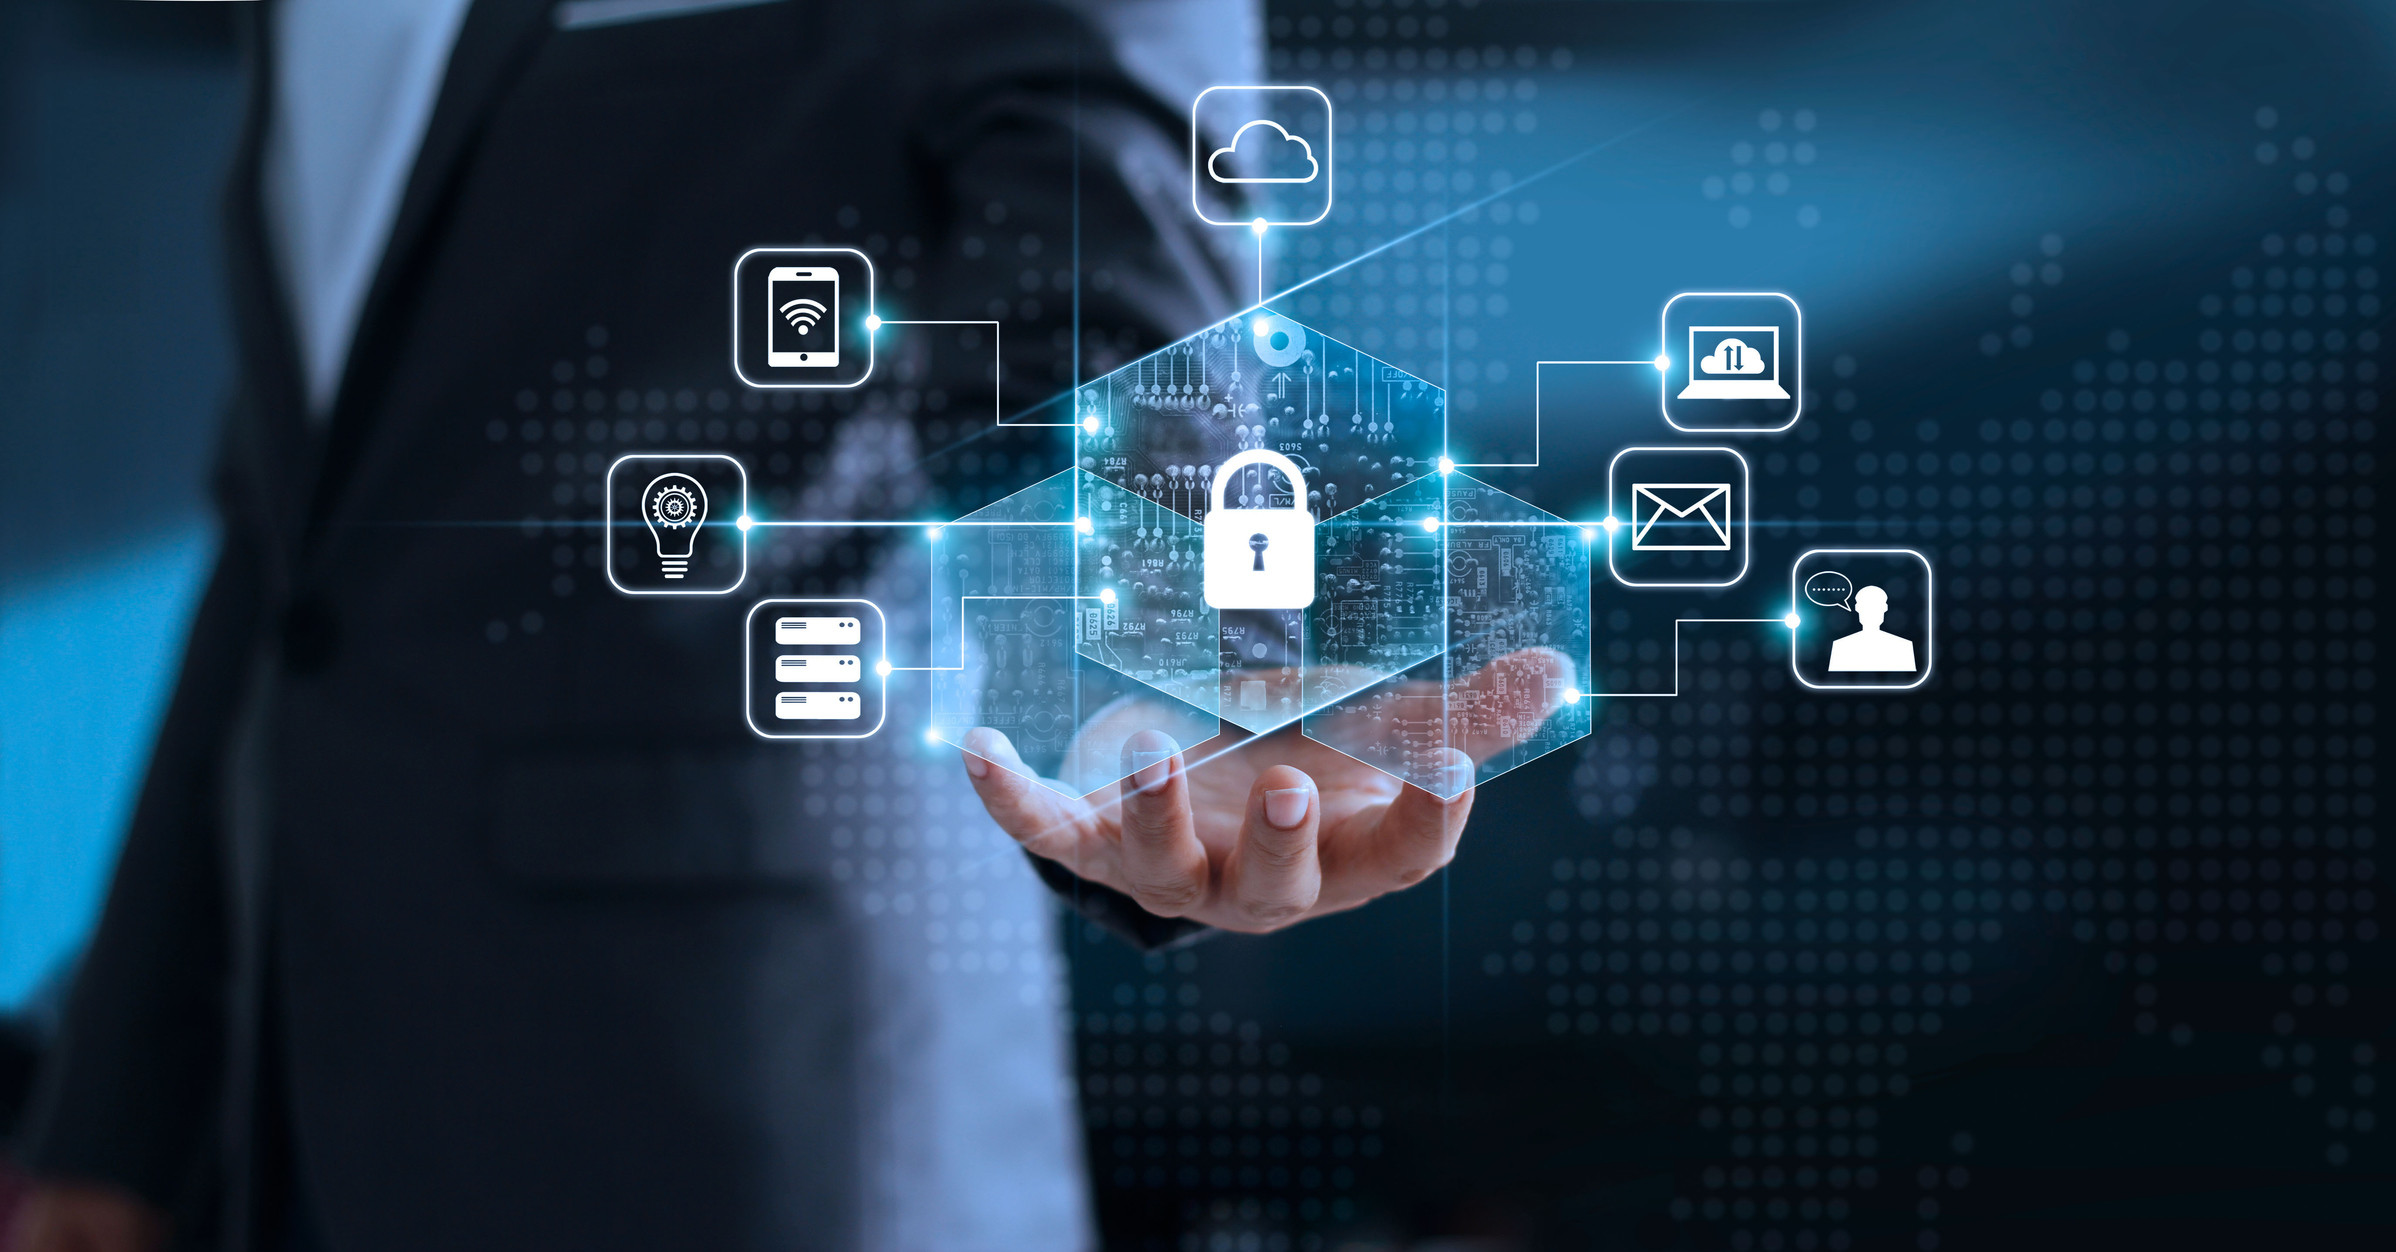 Only 0.5% of cybercriminals are convicted – so businesses must build their own cyber-resilience